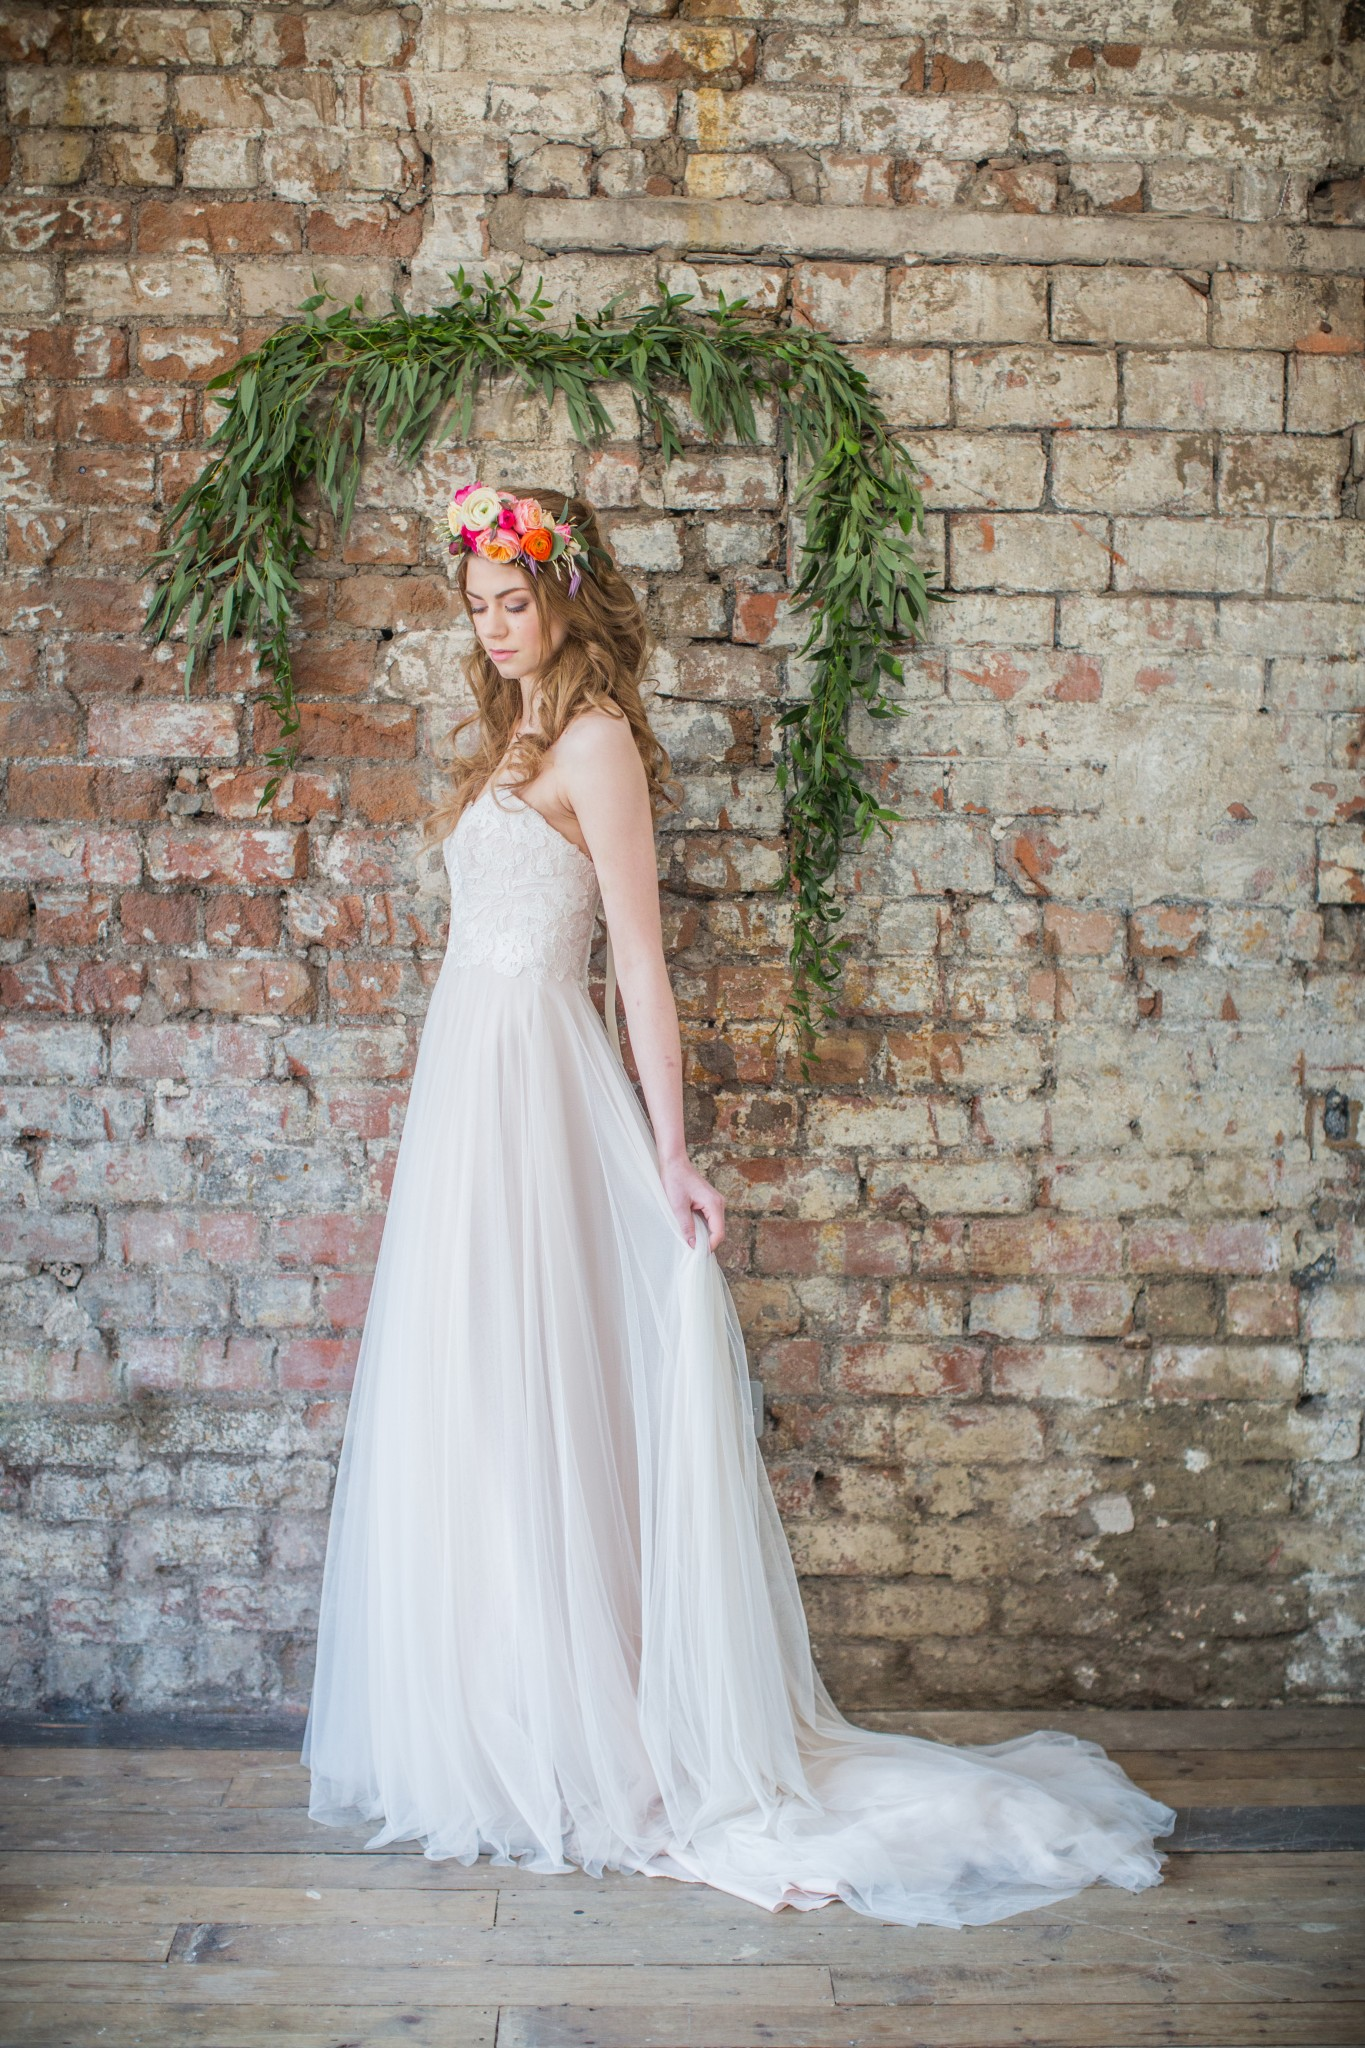 evoke-pictures_the-forge-bristol_wedding-ideas-shoot_109